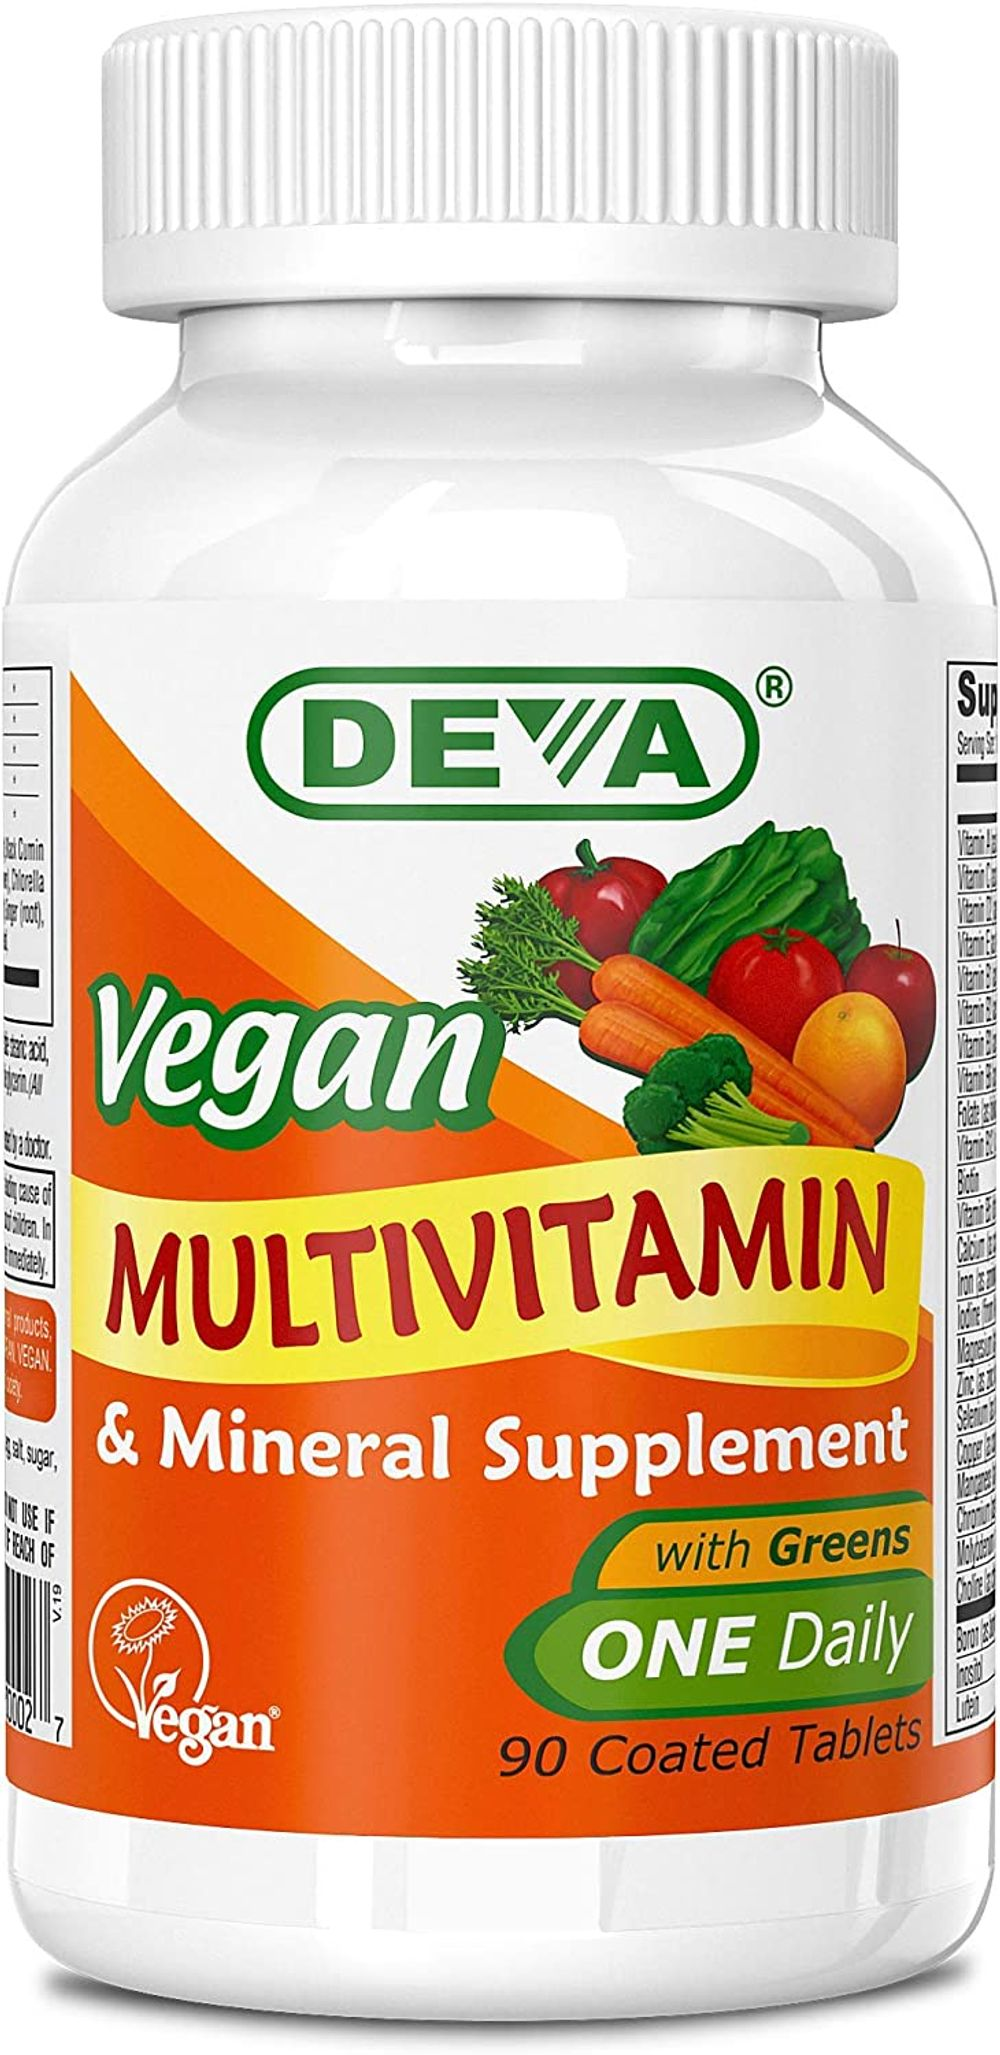 Deva Vegan Multivitamin & Mineral Supplement - Vegan Formula with Green Whole Foods, Veggies, and Herbs - High Potency - Manufactured in USA and 100% Vegan - 90 Count (Pack of 2)